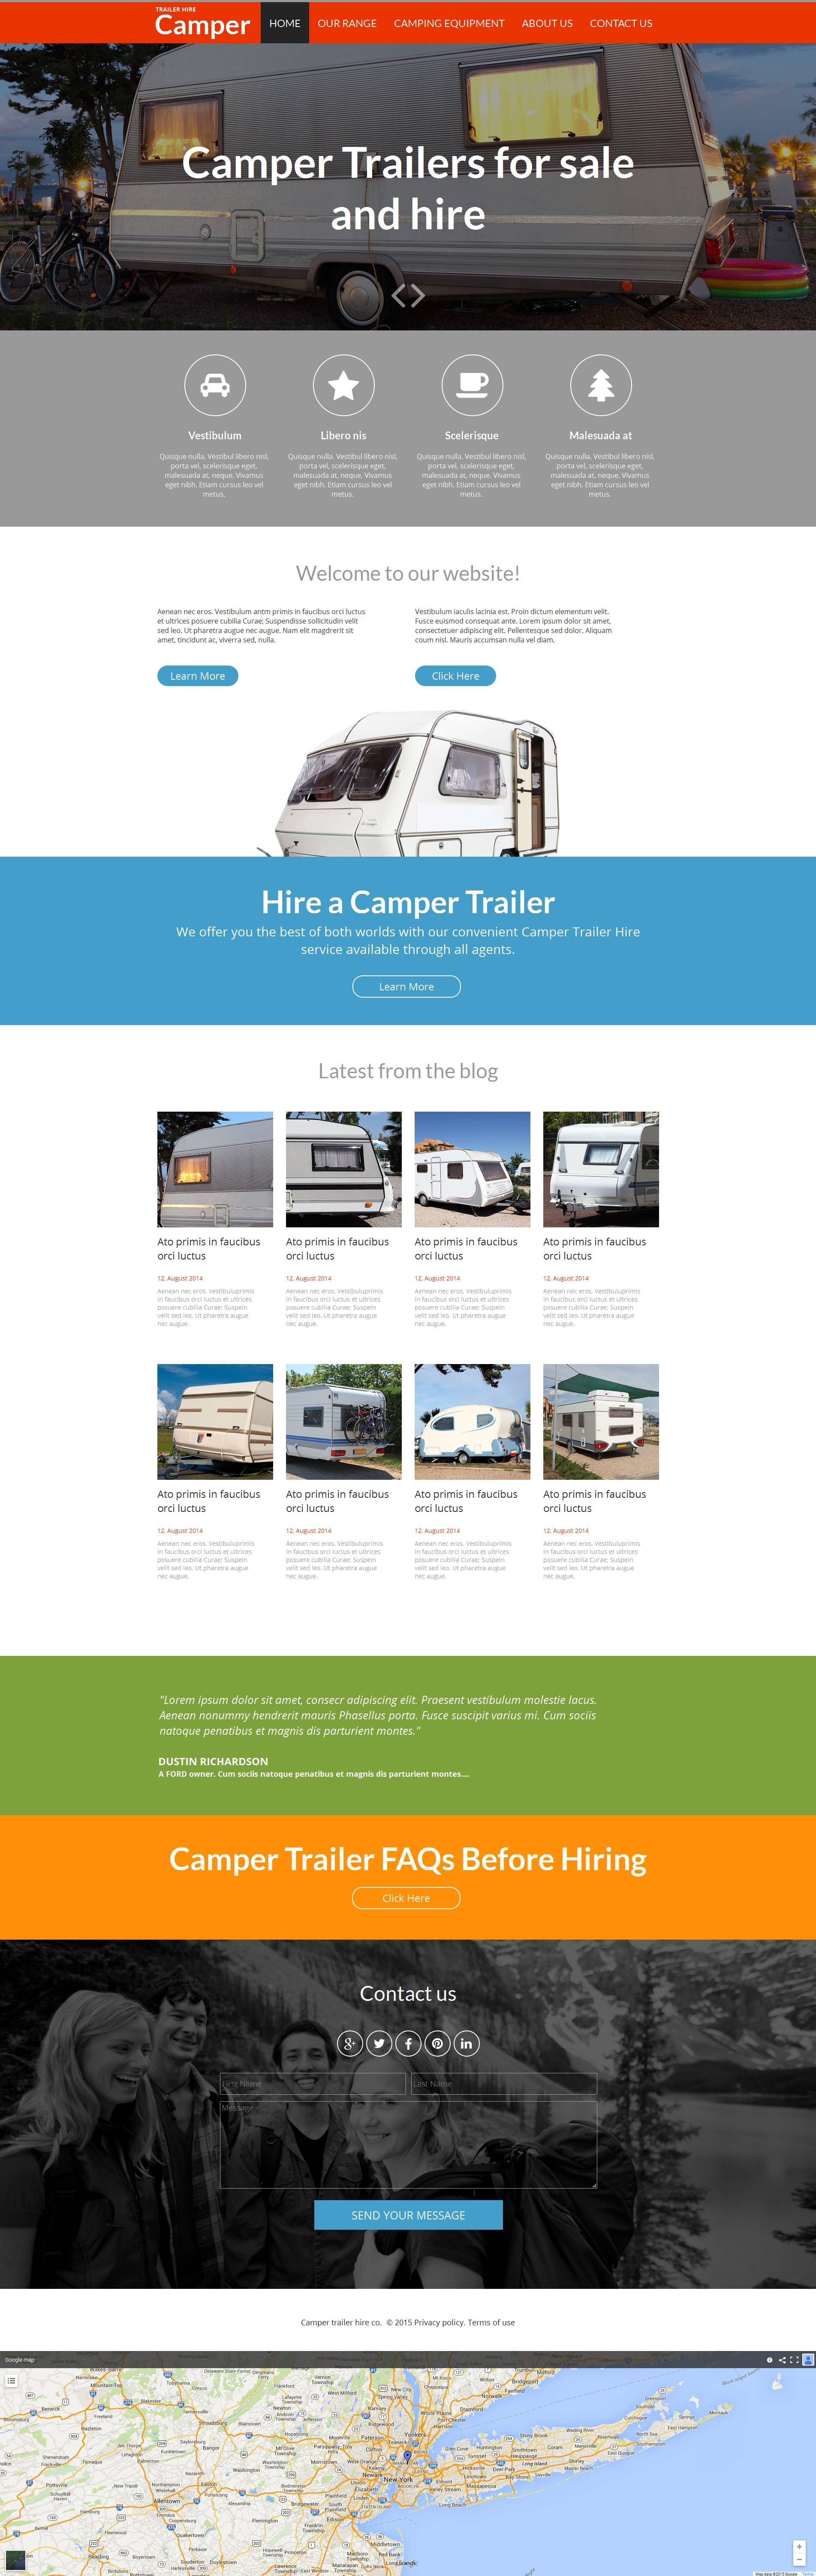 The Camper Camping Moto CMS HTML Design 53230, one of the best Moto CMS HTML templates of its kind (travel), also known as camper camping Moto CMS HTML template, tourism Moto CMS HTML template, equipment Moto CMS HTML template, tents Moto CMS HTML template, campers Moto CMS HTML template, motorhome Moto CMS HTML template, hire Moto CMS HTML template, western Moto CMS HTML template, lakes Moto CMS HTML template, mountains Moto CMS HTML template, mid Moto CMS HTML template, coast Moto CMS HTML template, down Moto CMS HTML template, east Moto CMS HTML template, sunrise Moto CMS HTML template, country Moto CMS HTML template, tourists Moto CMS HTML template, guide Moto CMS HTML template, tips Moto CMS HTML template, regions Moto CMS HTML template, destination Moto CMS HTML template, map Moto CMS HTML template, compass Moto CMS HTML template, info Moto CMS HTML template, statewide Moto CMS HTML template, activity Moto CMS HTML template, gallery Moto CMS HTML template, location Moto CMS HTML template, relaxation Moto CMS HTML template, recreation Moto CMS HTML template, impression Moto CMS HTML template, vacatio and related with camper camping, tourism, equipment, tents, campers, motorhome, hire, western, lakes, mountains, mid, coast, down, east, sunrise, country, tourists, guide, tips, regions, destination, map, compass, info, statewide, activity, gallery, location, relaxation, recreation, impression, vacatio, etc.